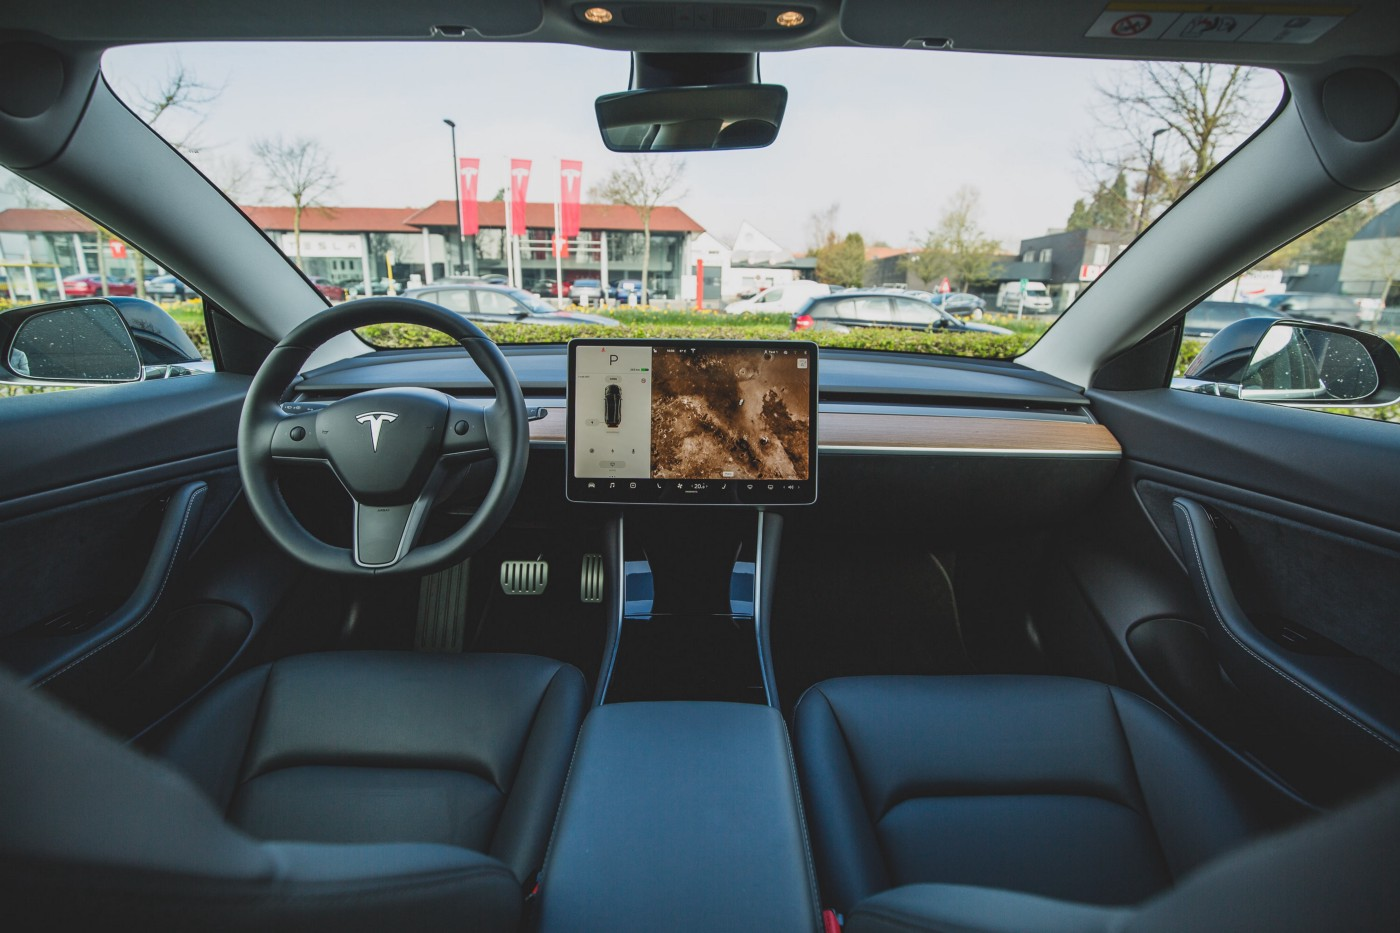 image of the interior of a tesla, a self-driven car